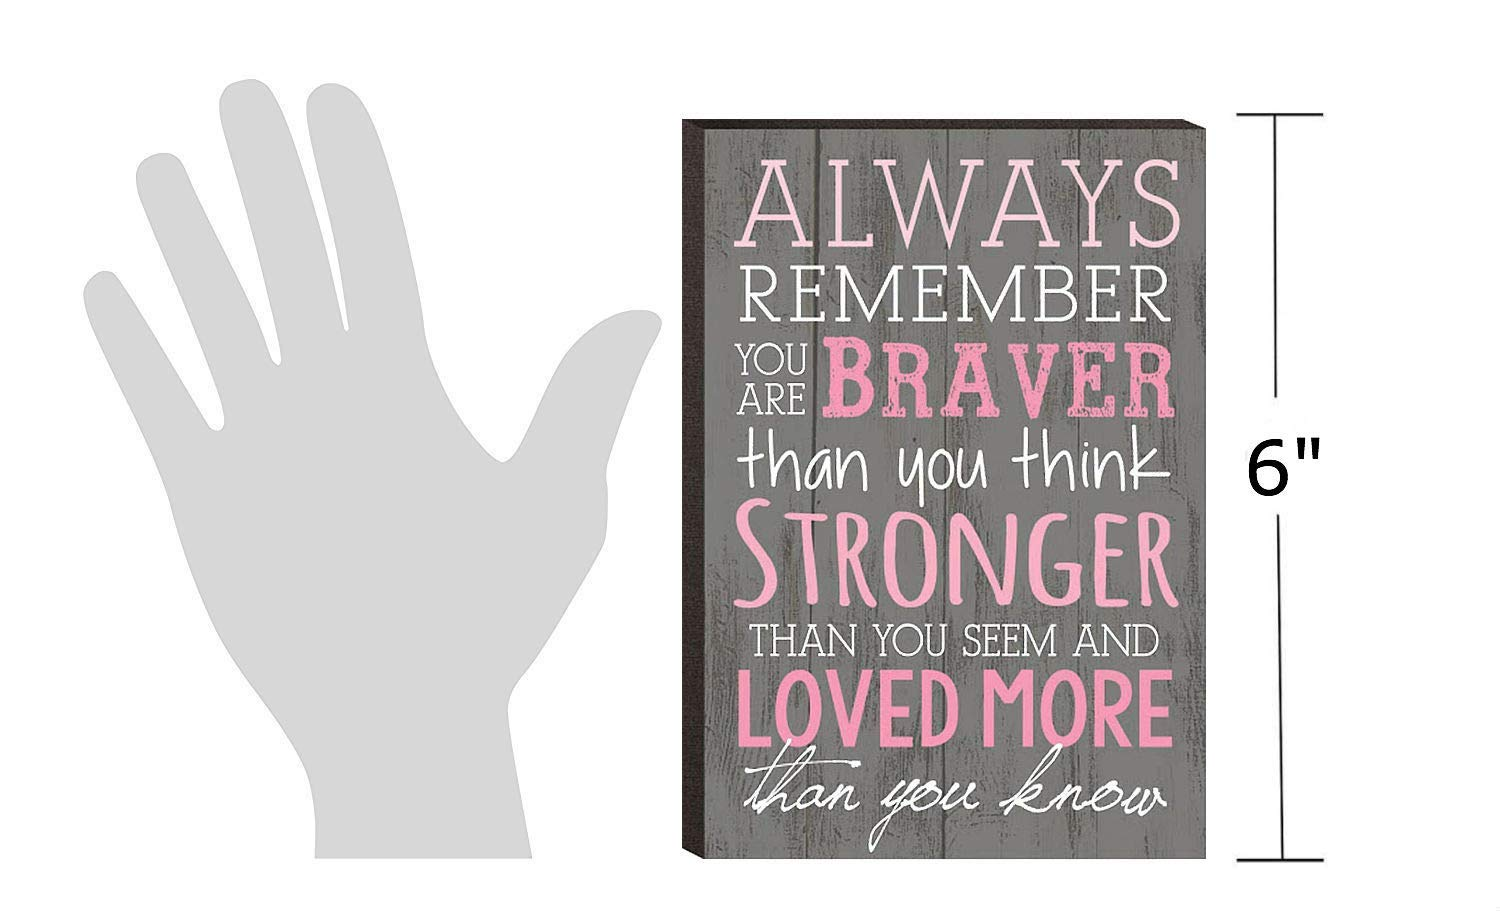 P. Graham Dunn Always Remember You are Braver Than You Think 4x6 Wall Plaque by P. Graham Dunn